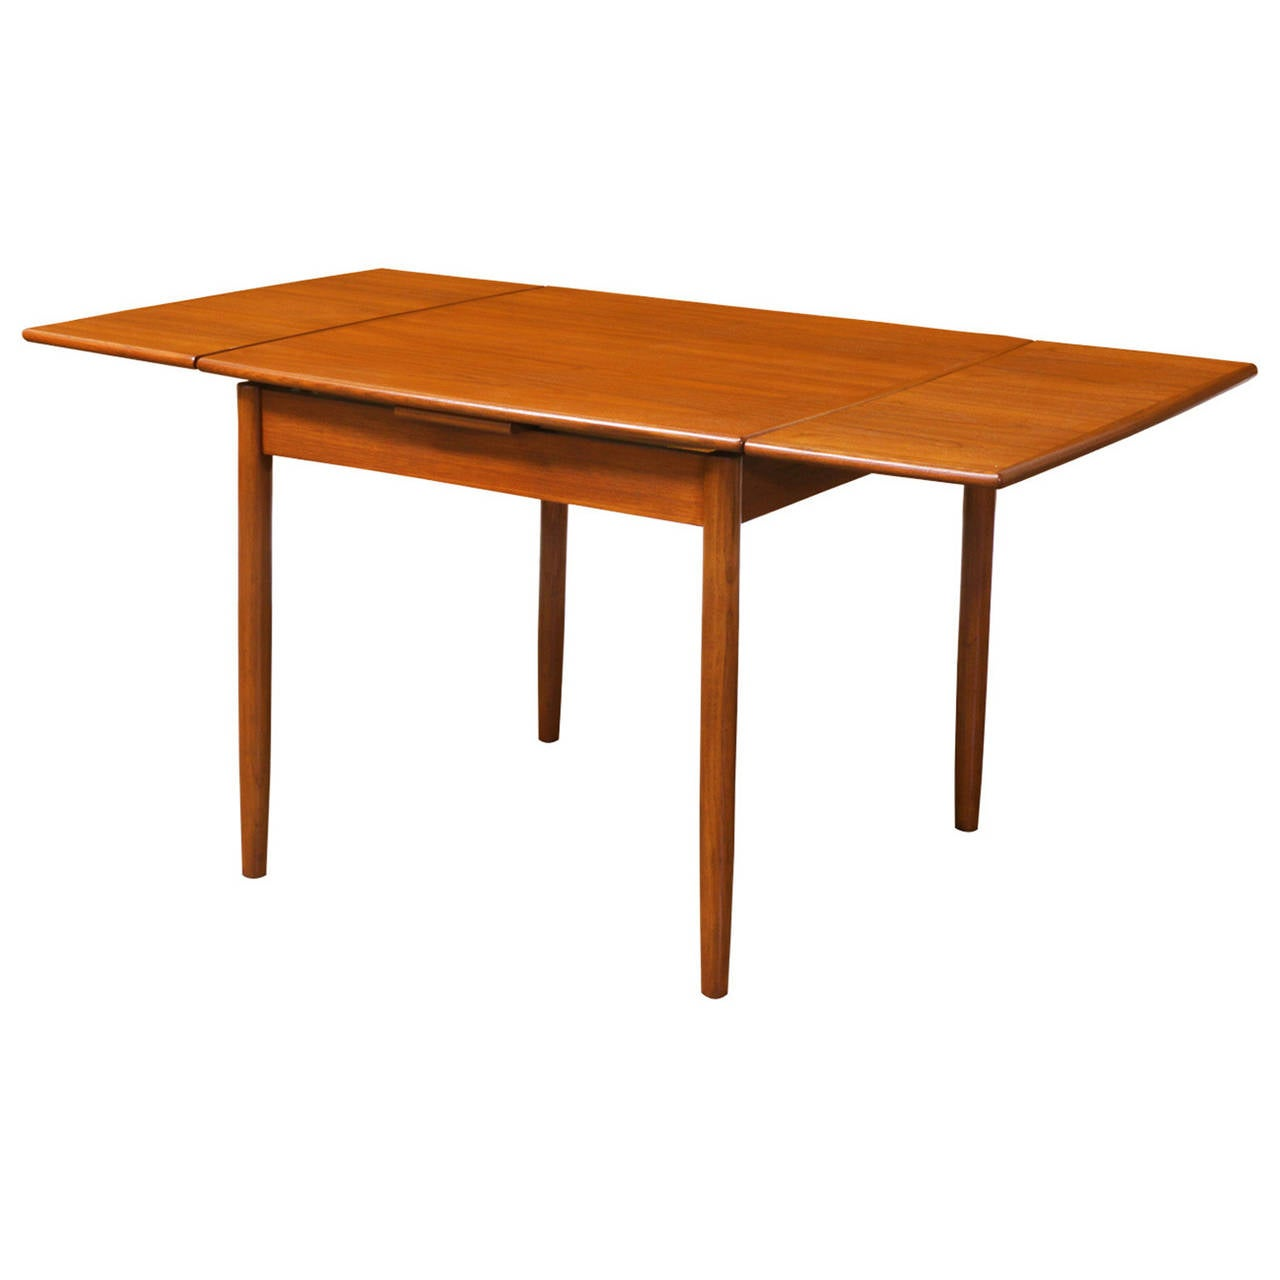 Danish modern teak square draw leaf dining table at 1stdibs for Dining room table replacement leaf